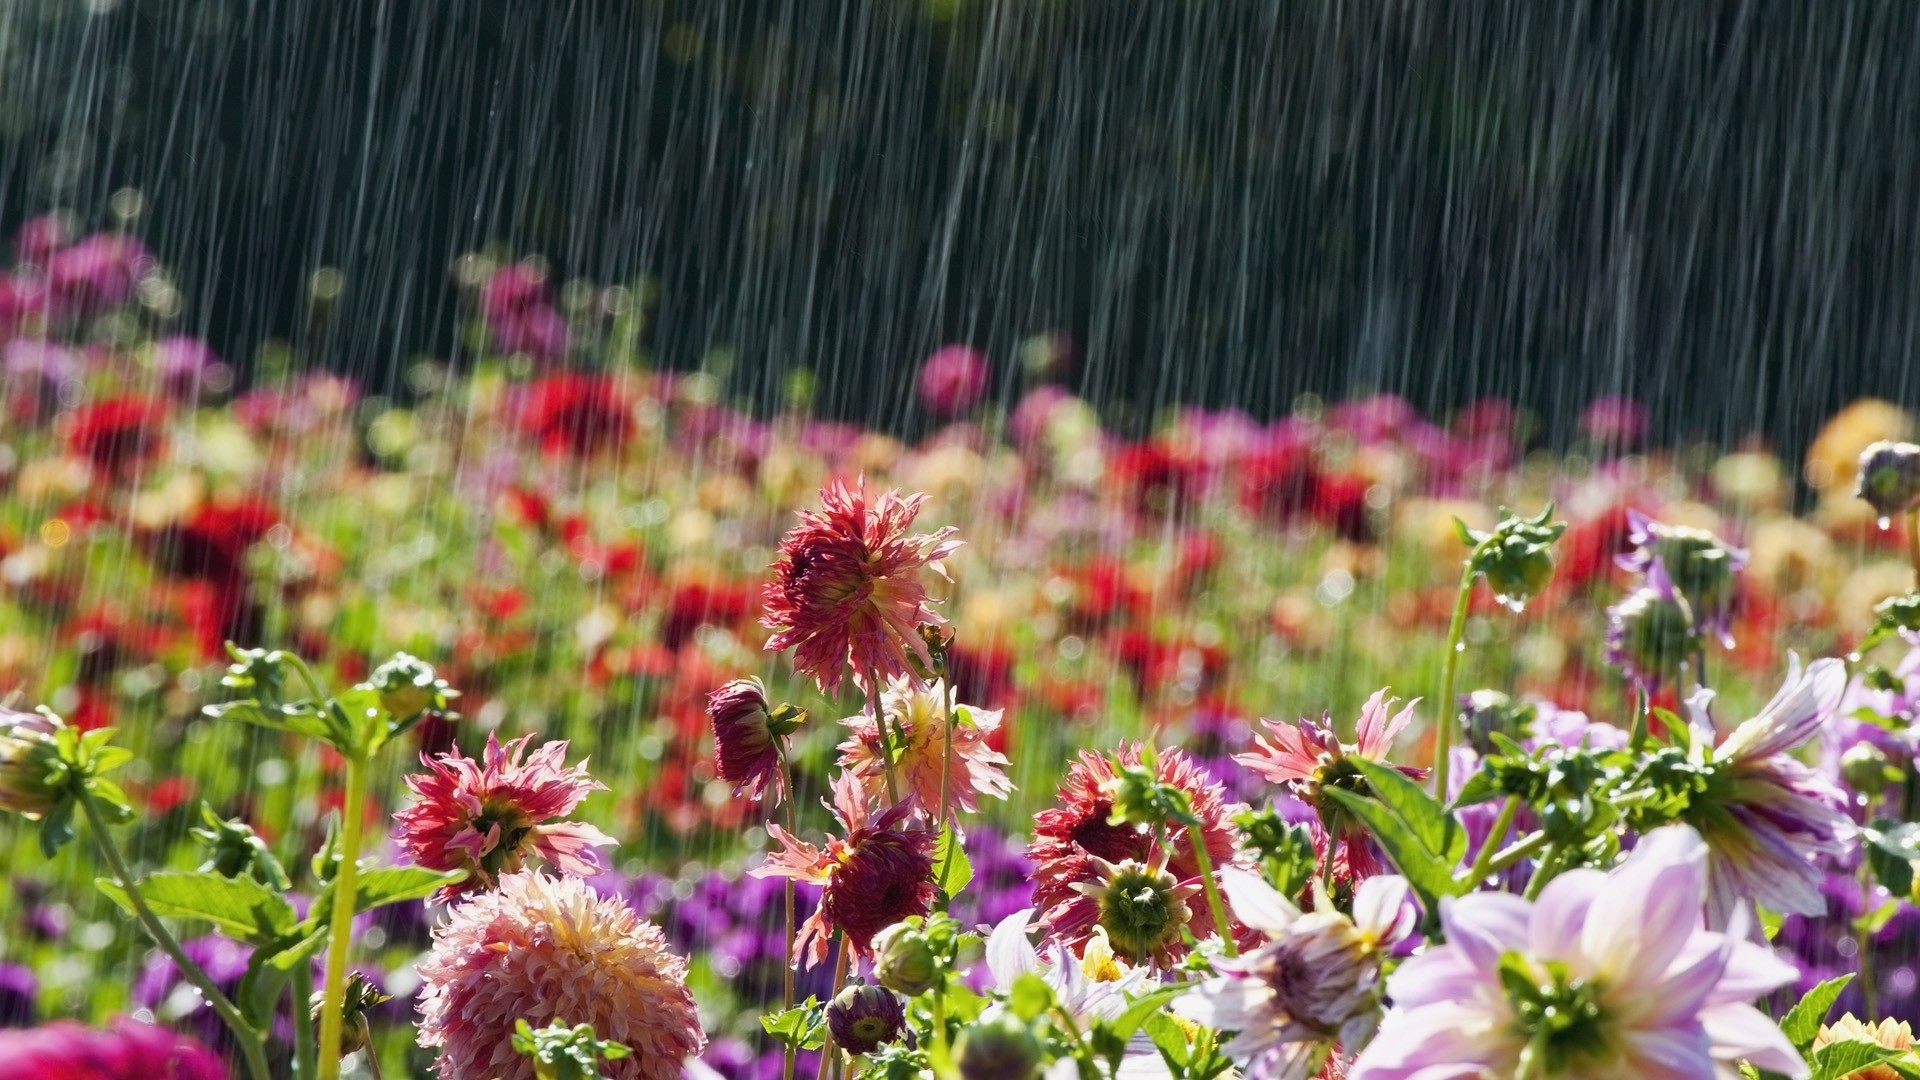 Beautiful Flowers in rain Latest Wallpaper